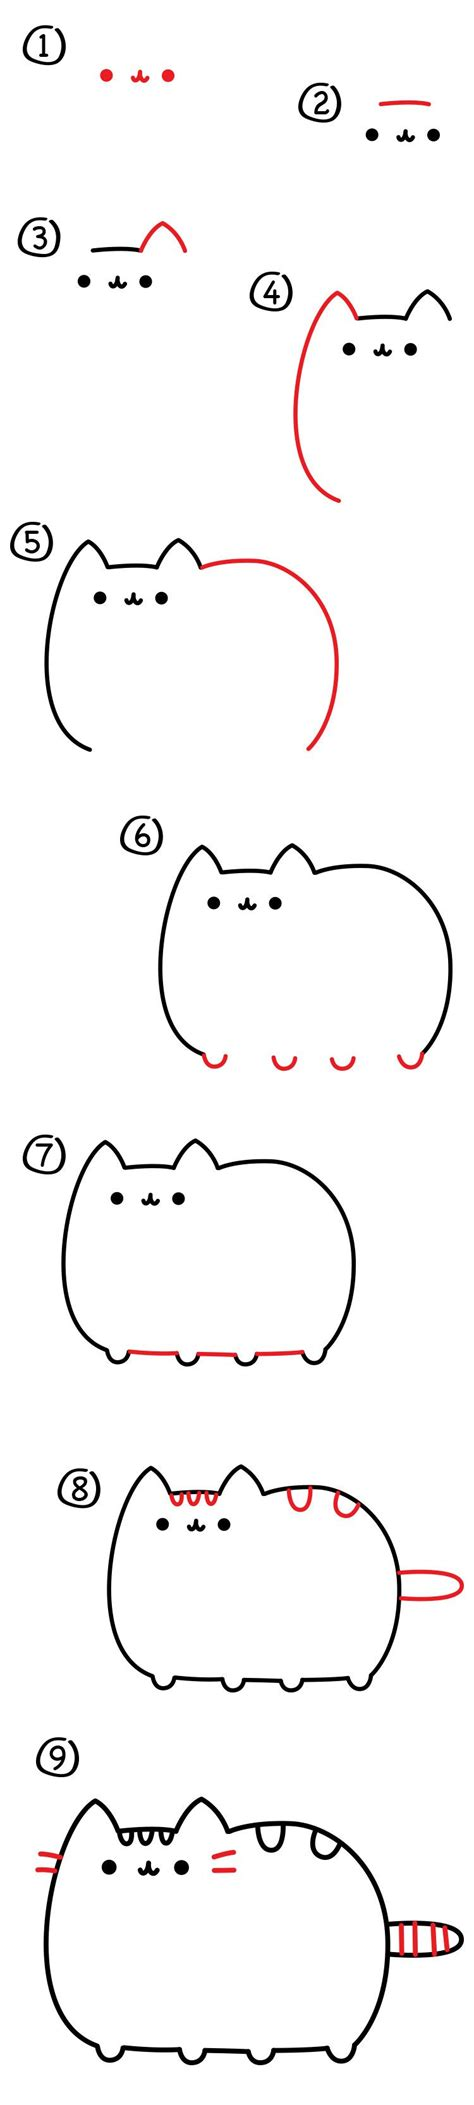 cat step step how to draw the pusheen cat for hub pusheen